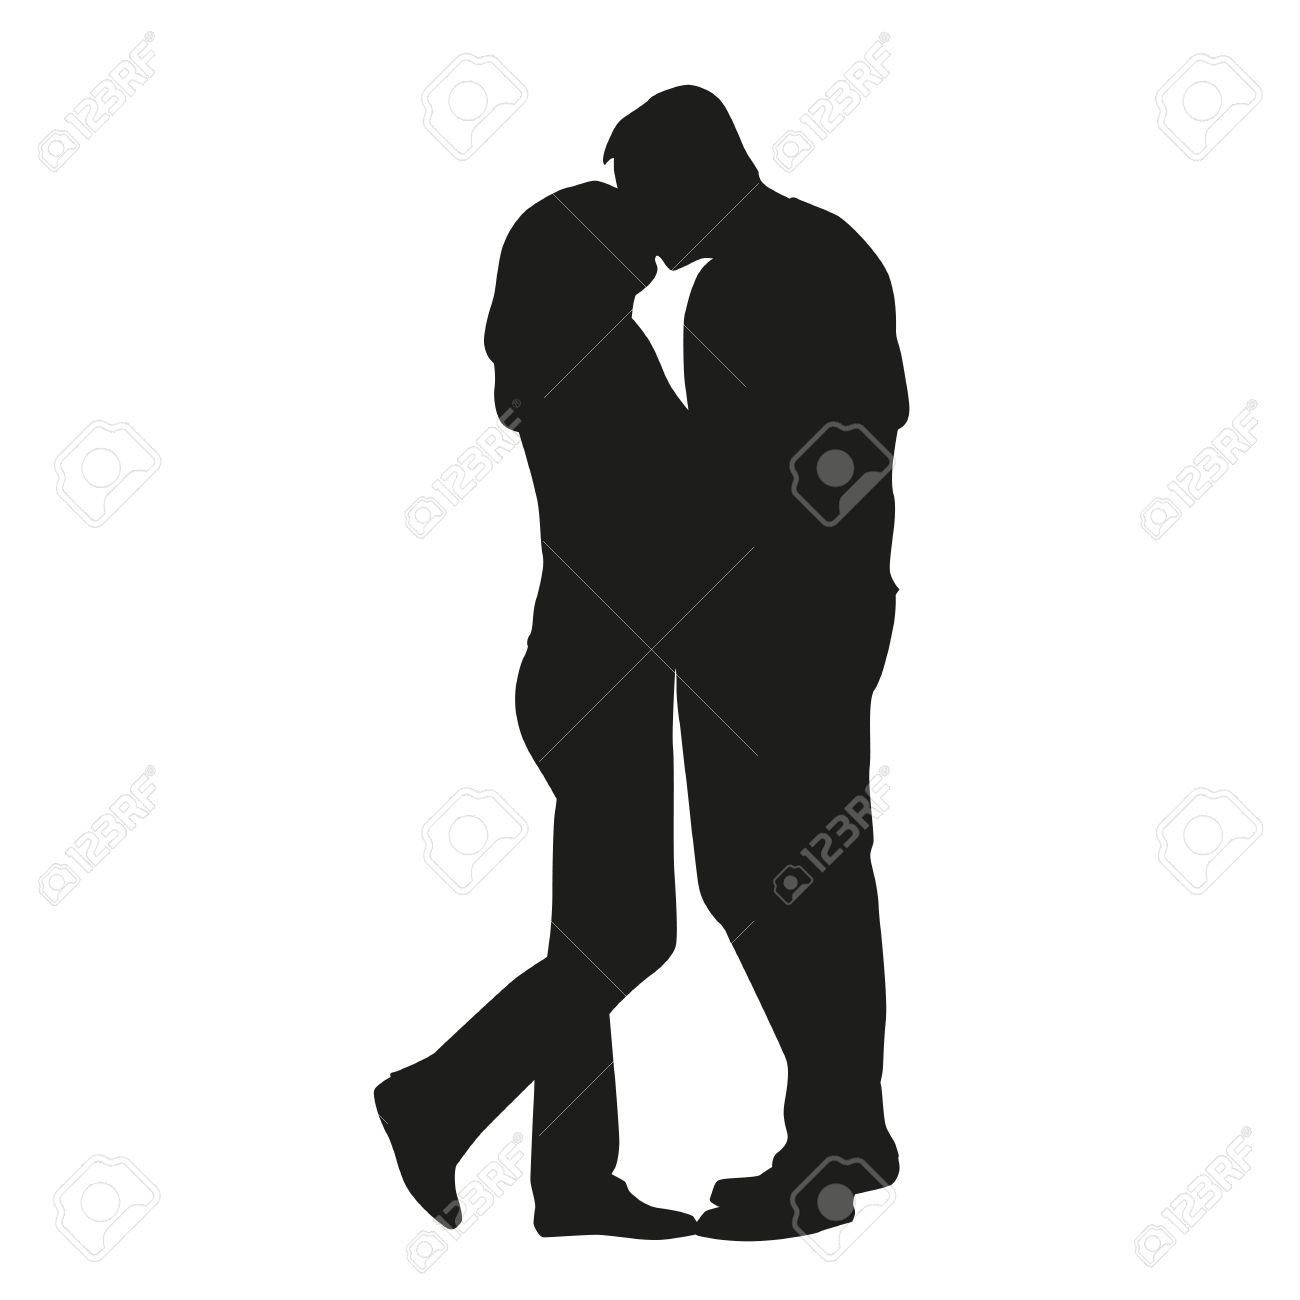 Couple Kissing Silhouette. In Love Royalty Free Cliparts, Vectors ... for Couple Silhouette Umbrella Kissing  lp4eri